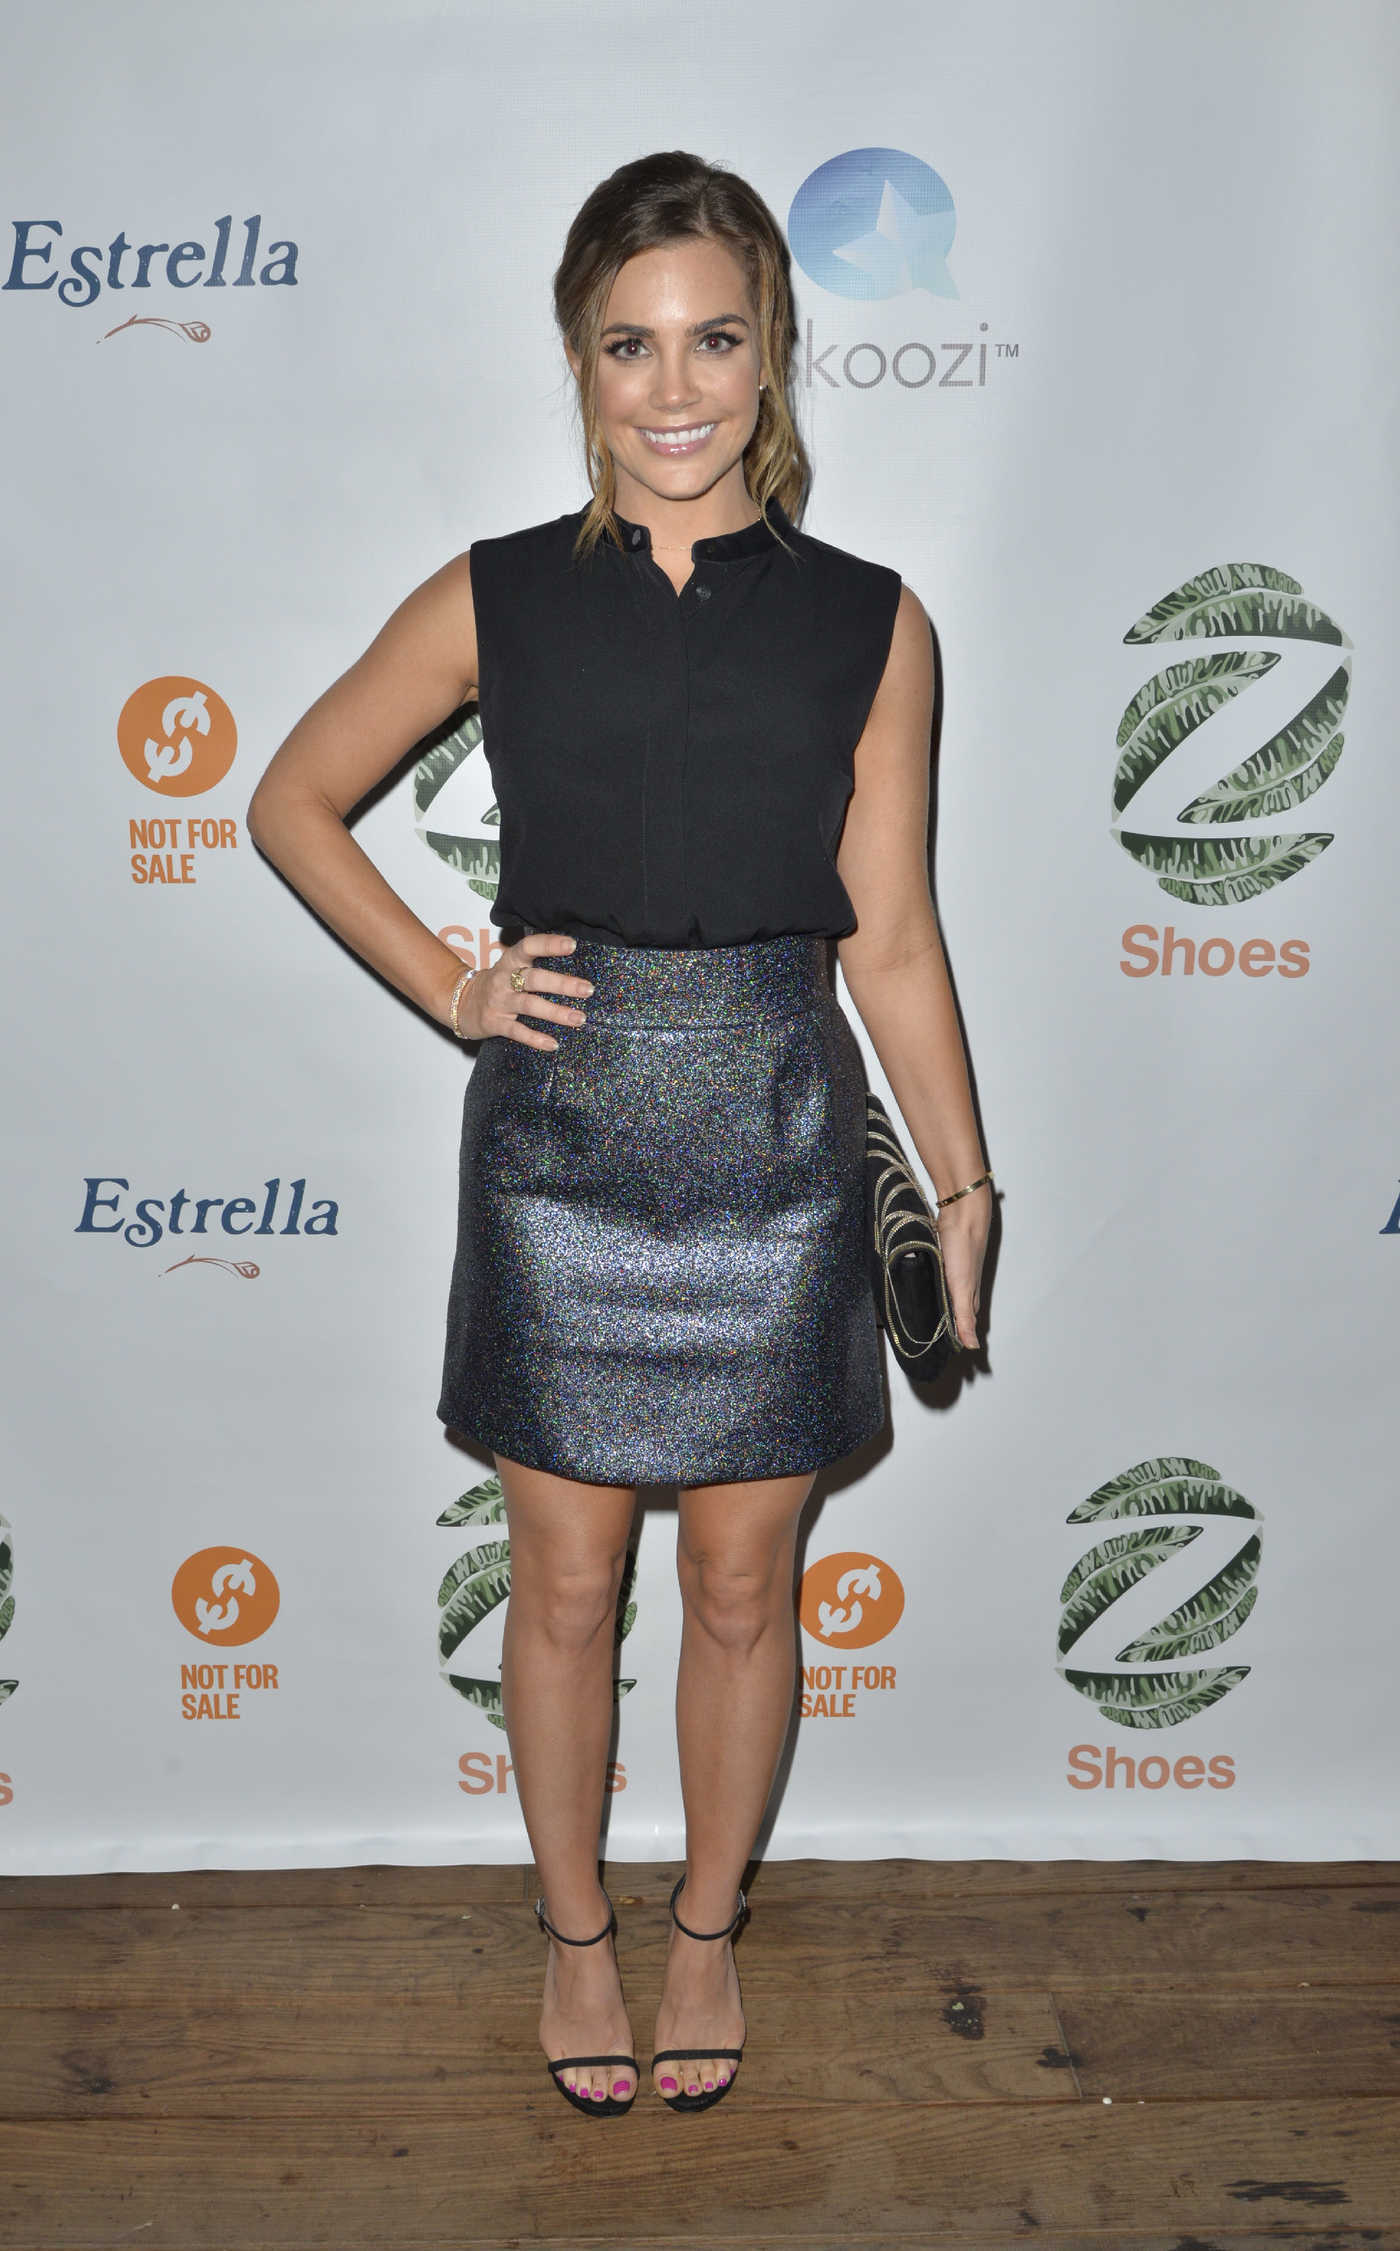 Jillian Murray at the Not for Sale x Z Shoes Benefit at Estrella in West Hollywood 12/09/2016